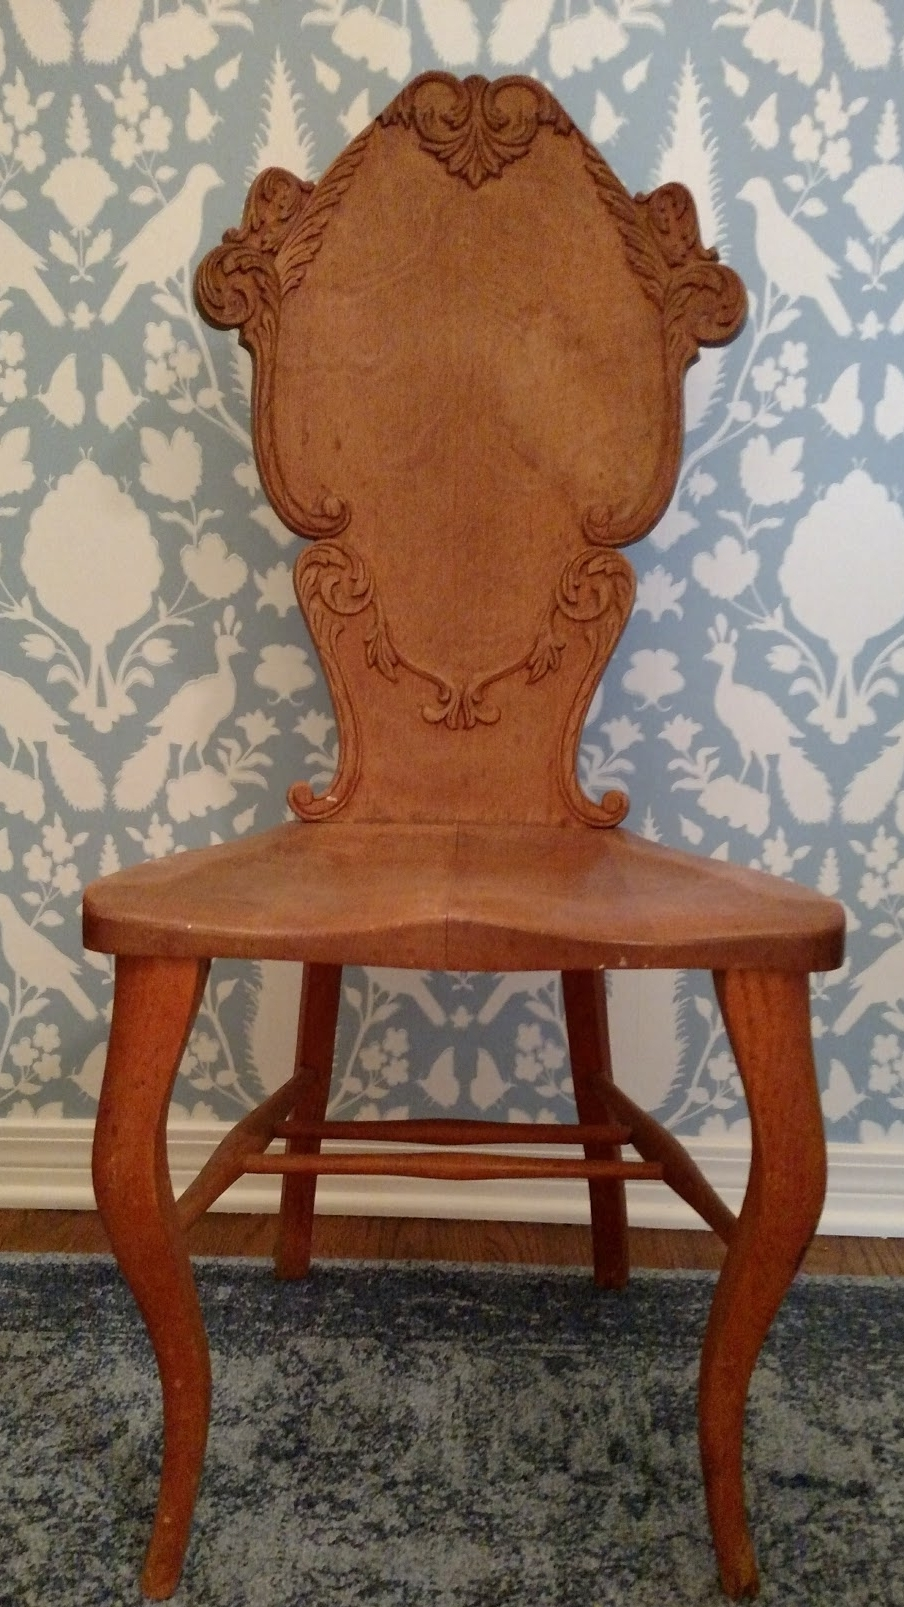 ALTER CHAIR #2.jpg